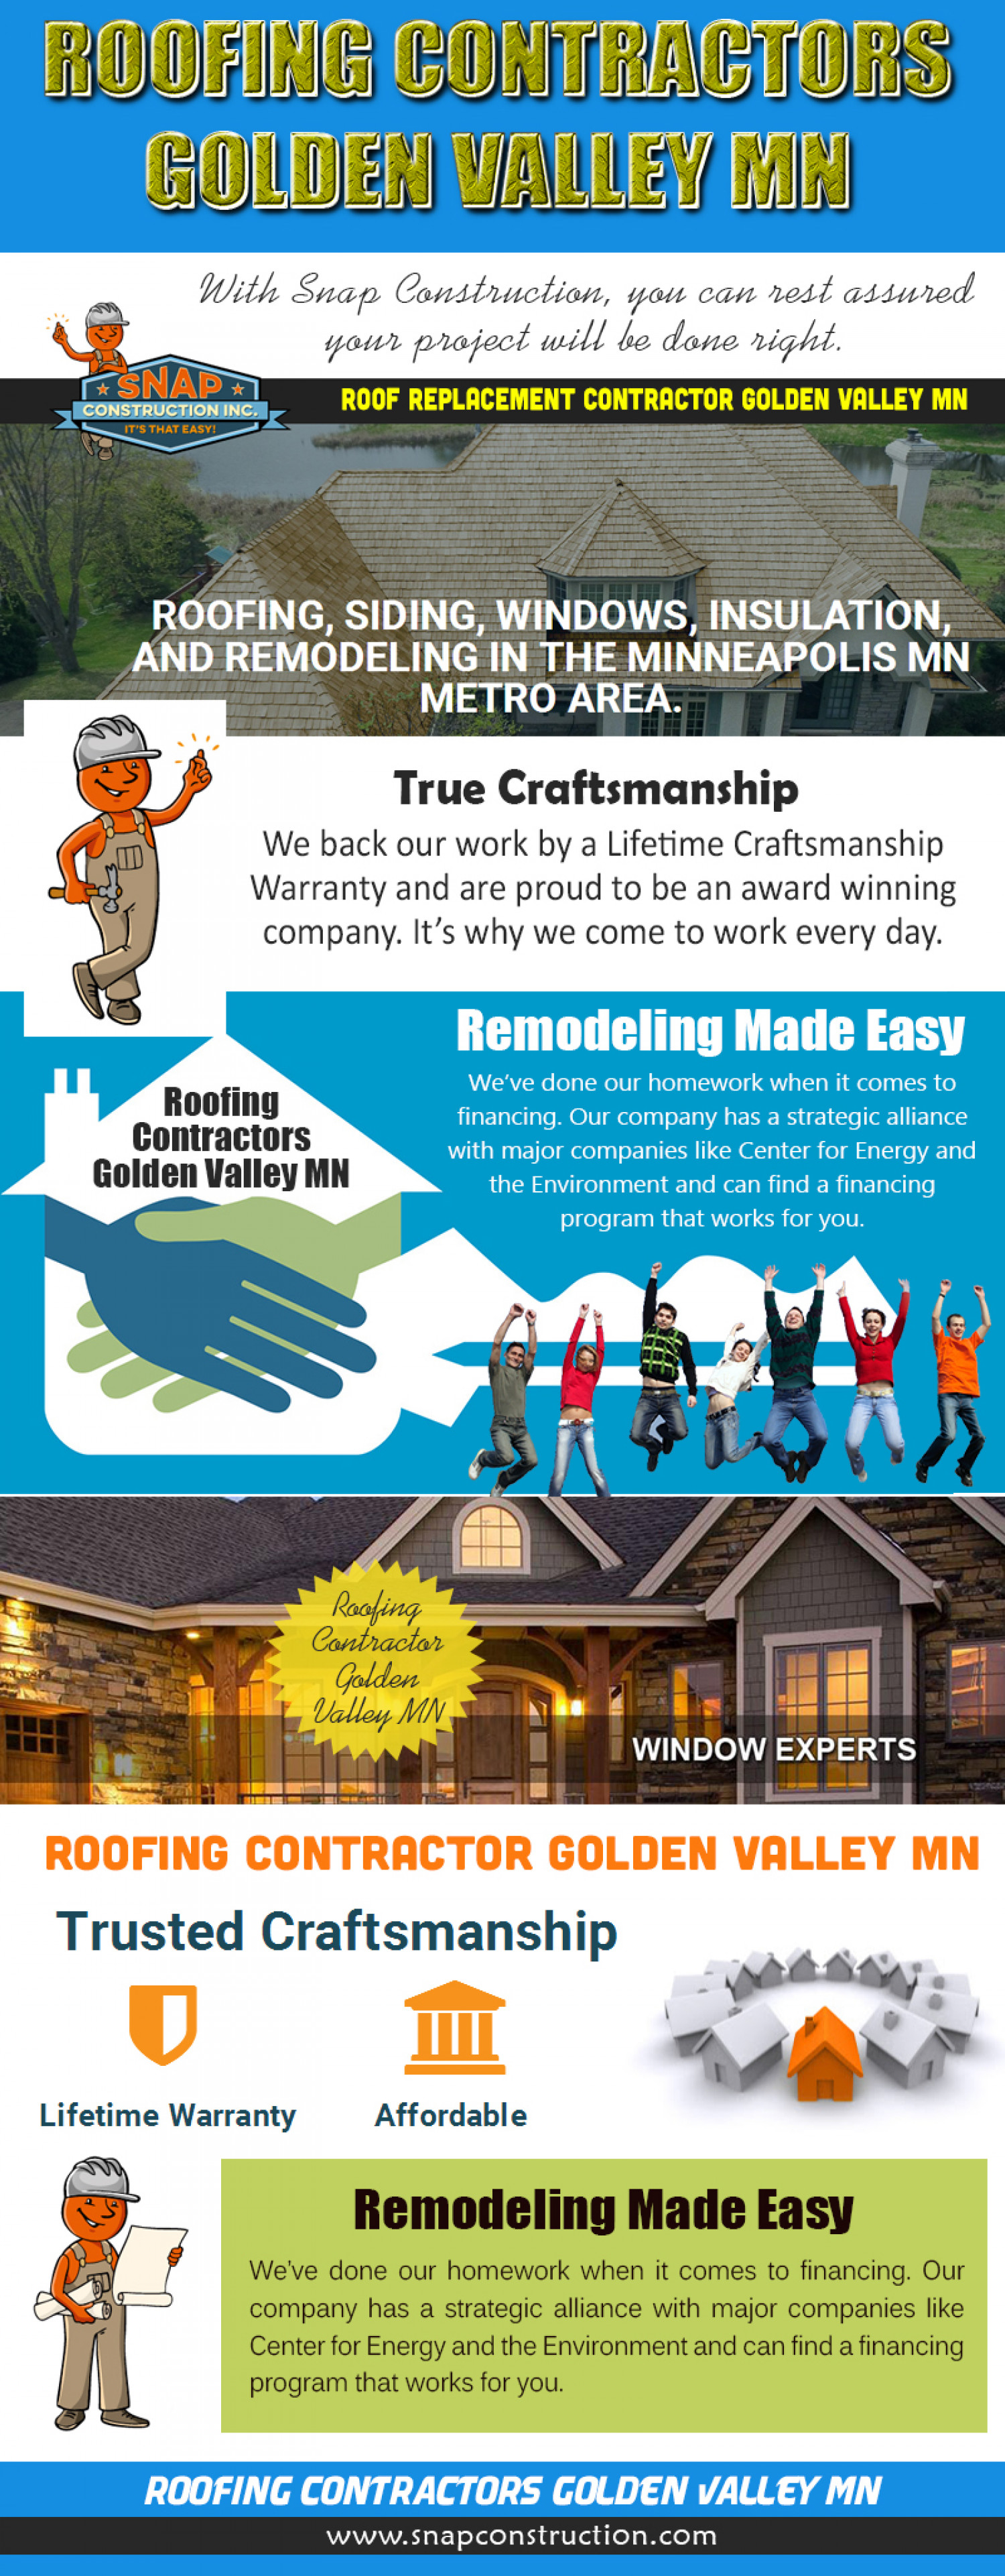 Roofing Contractors Golden Valley MN Infographic